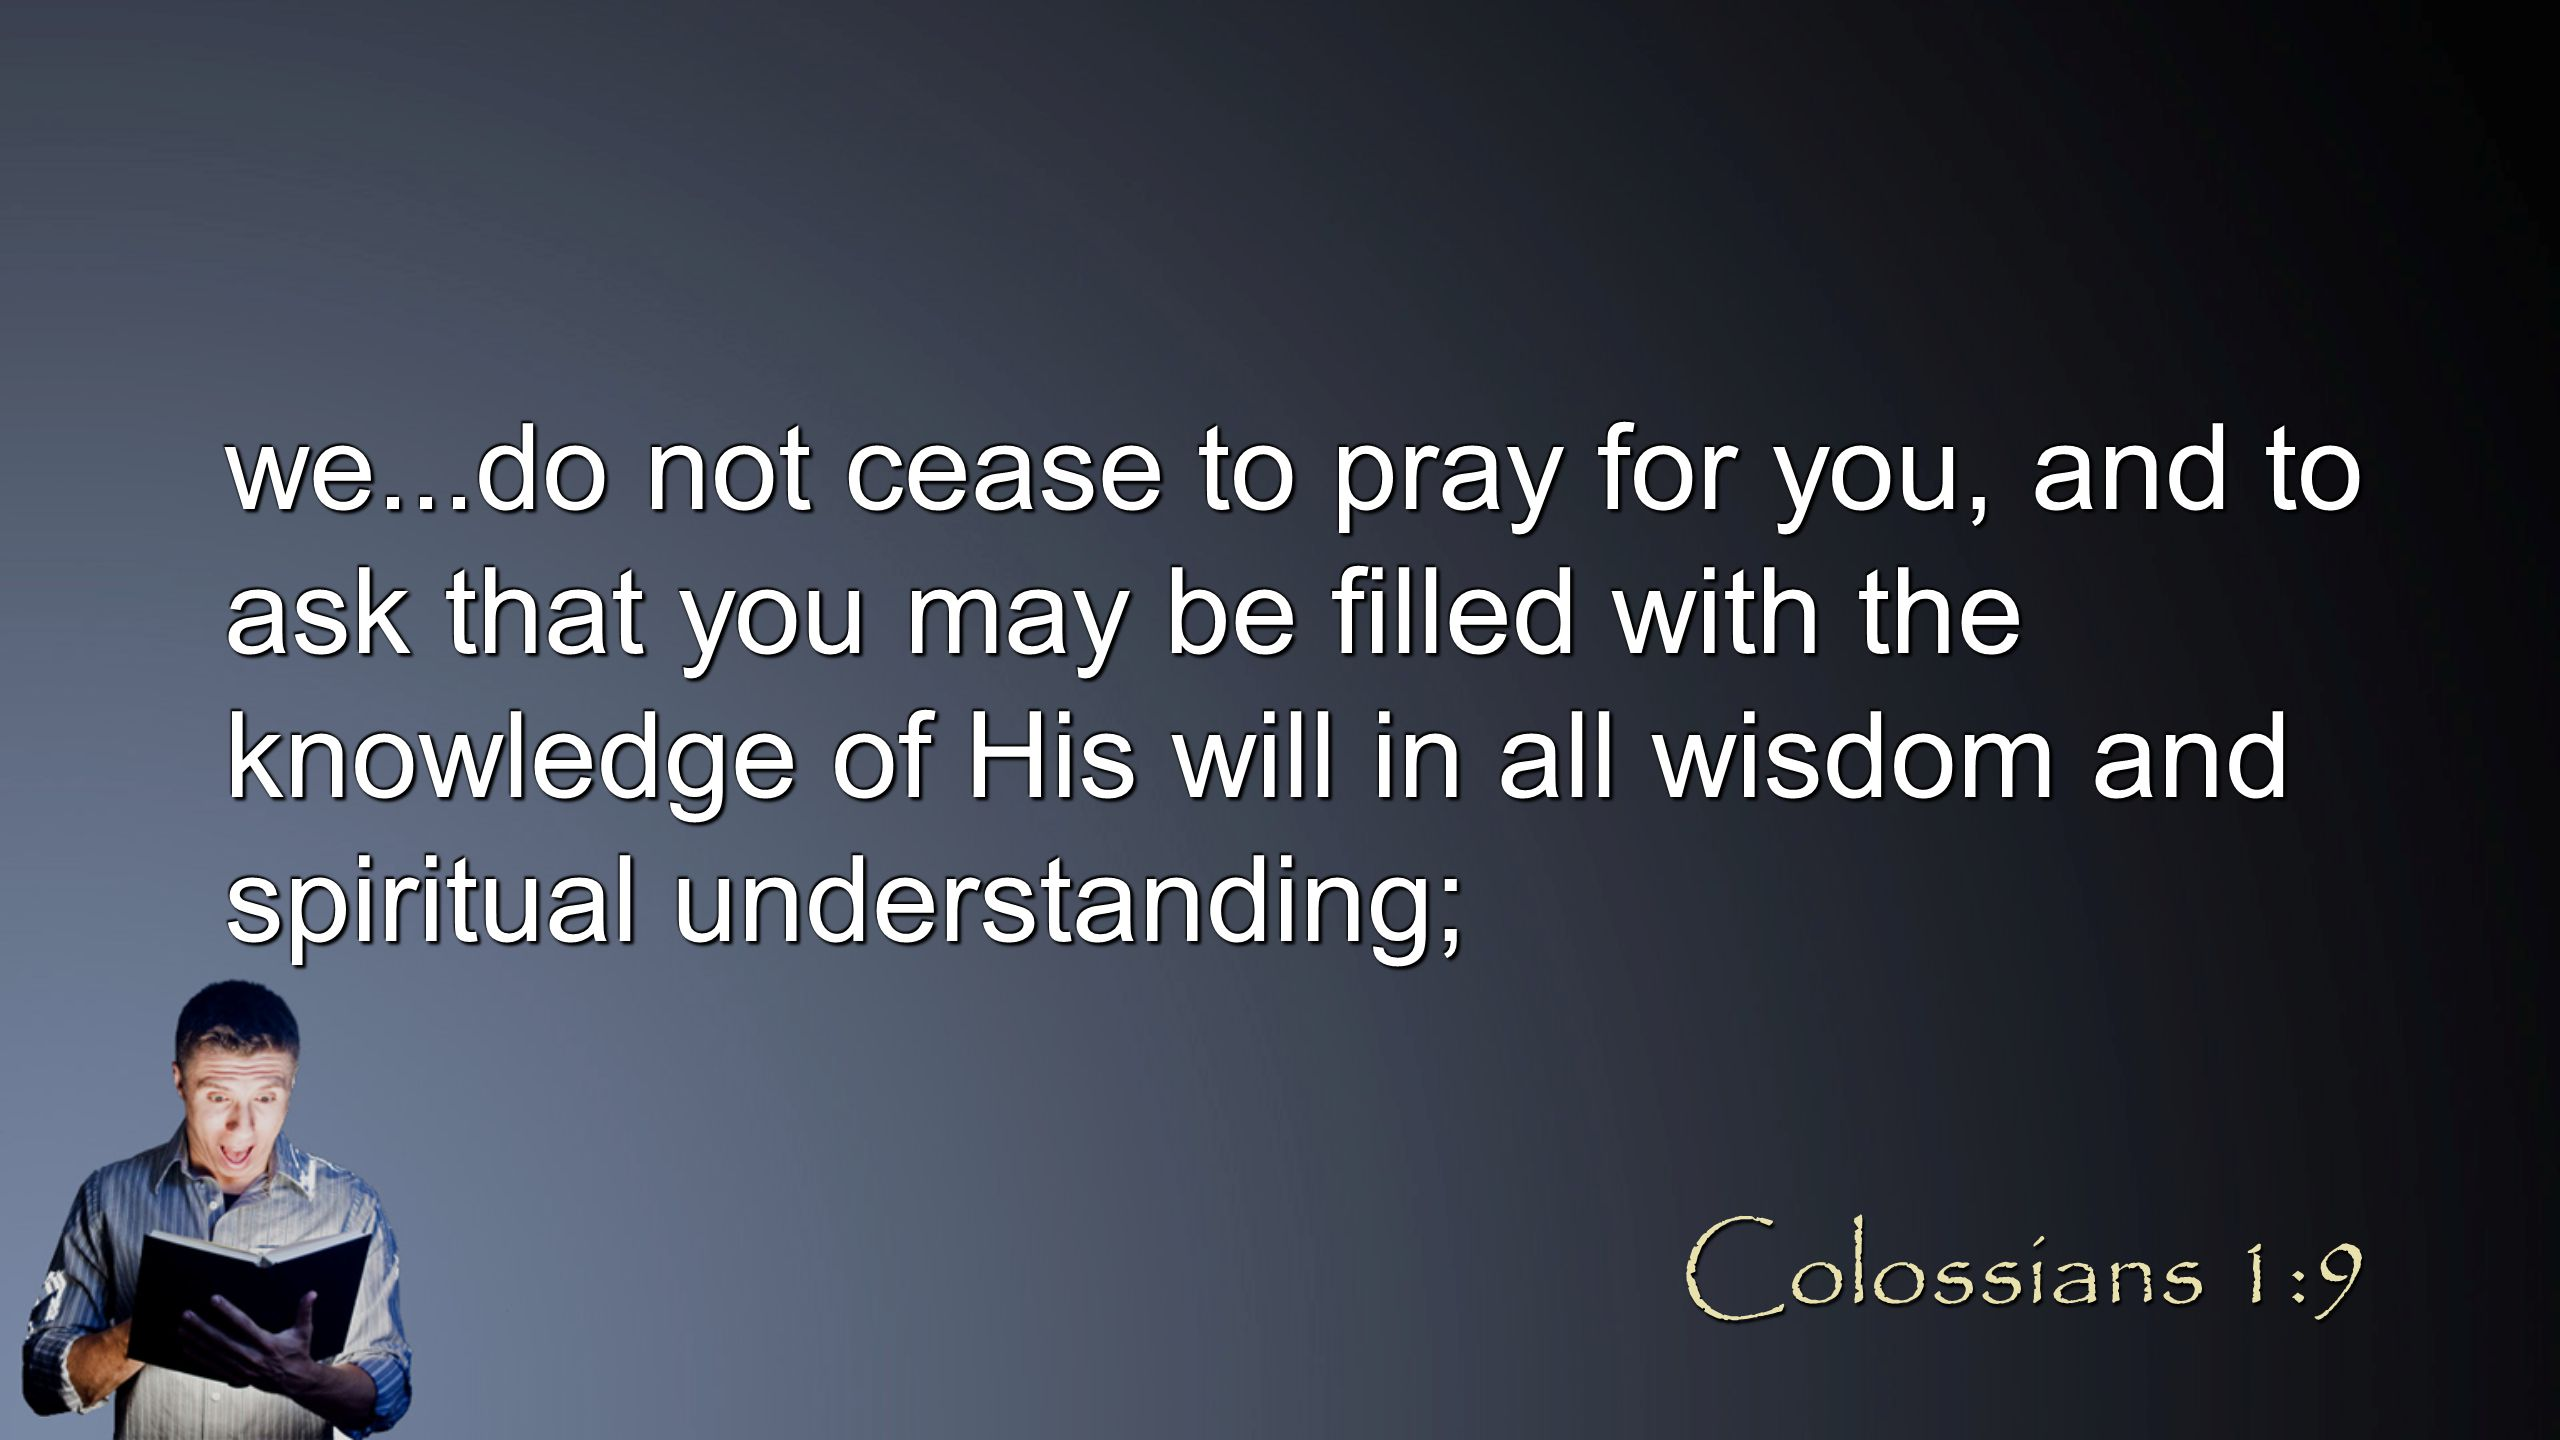 we...do not cease to pray for you, and to ask that you may be filled with the knowledge of His will in all wisdom and spiritual understanding; Colossi